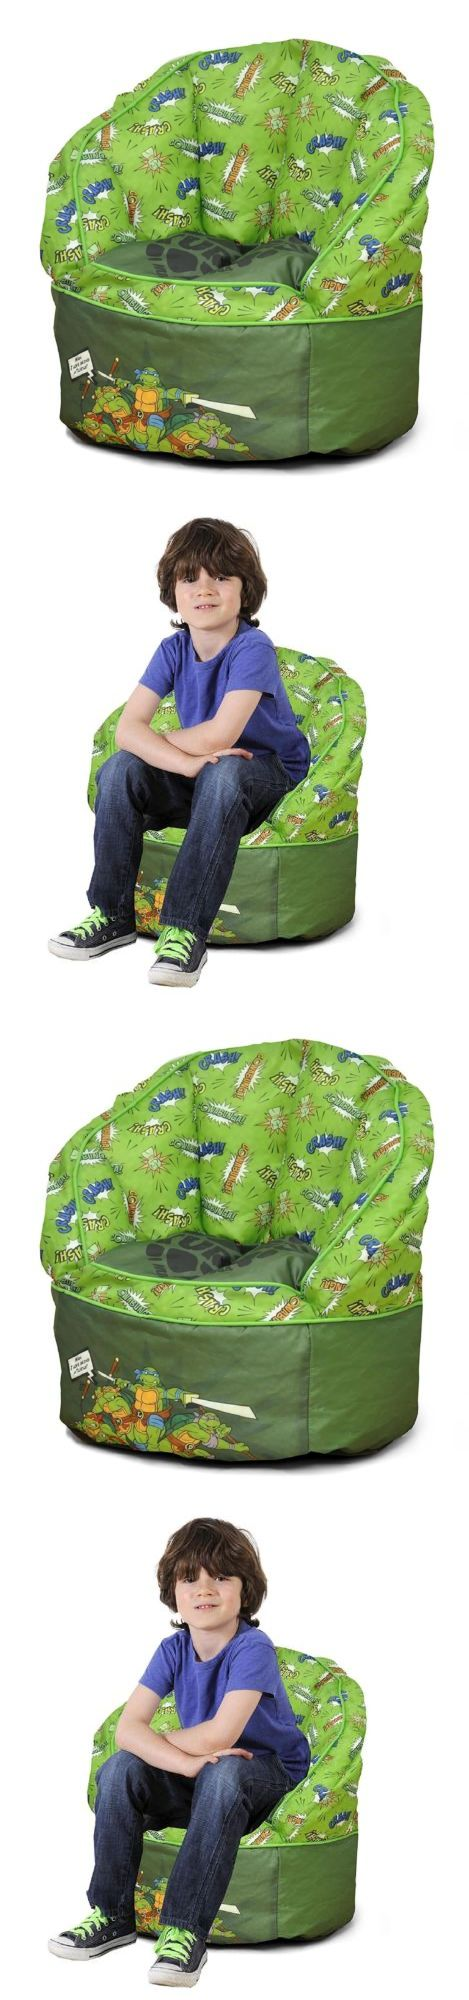 Bean Bags and Inflatables 108428: Toddler Bean Bag Sofa Chair Furniture Bedroom Seat Teenage Mutant Ninja Turtles -> BUY IT NOW ONLY: $33.33 on eBay!